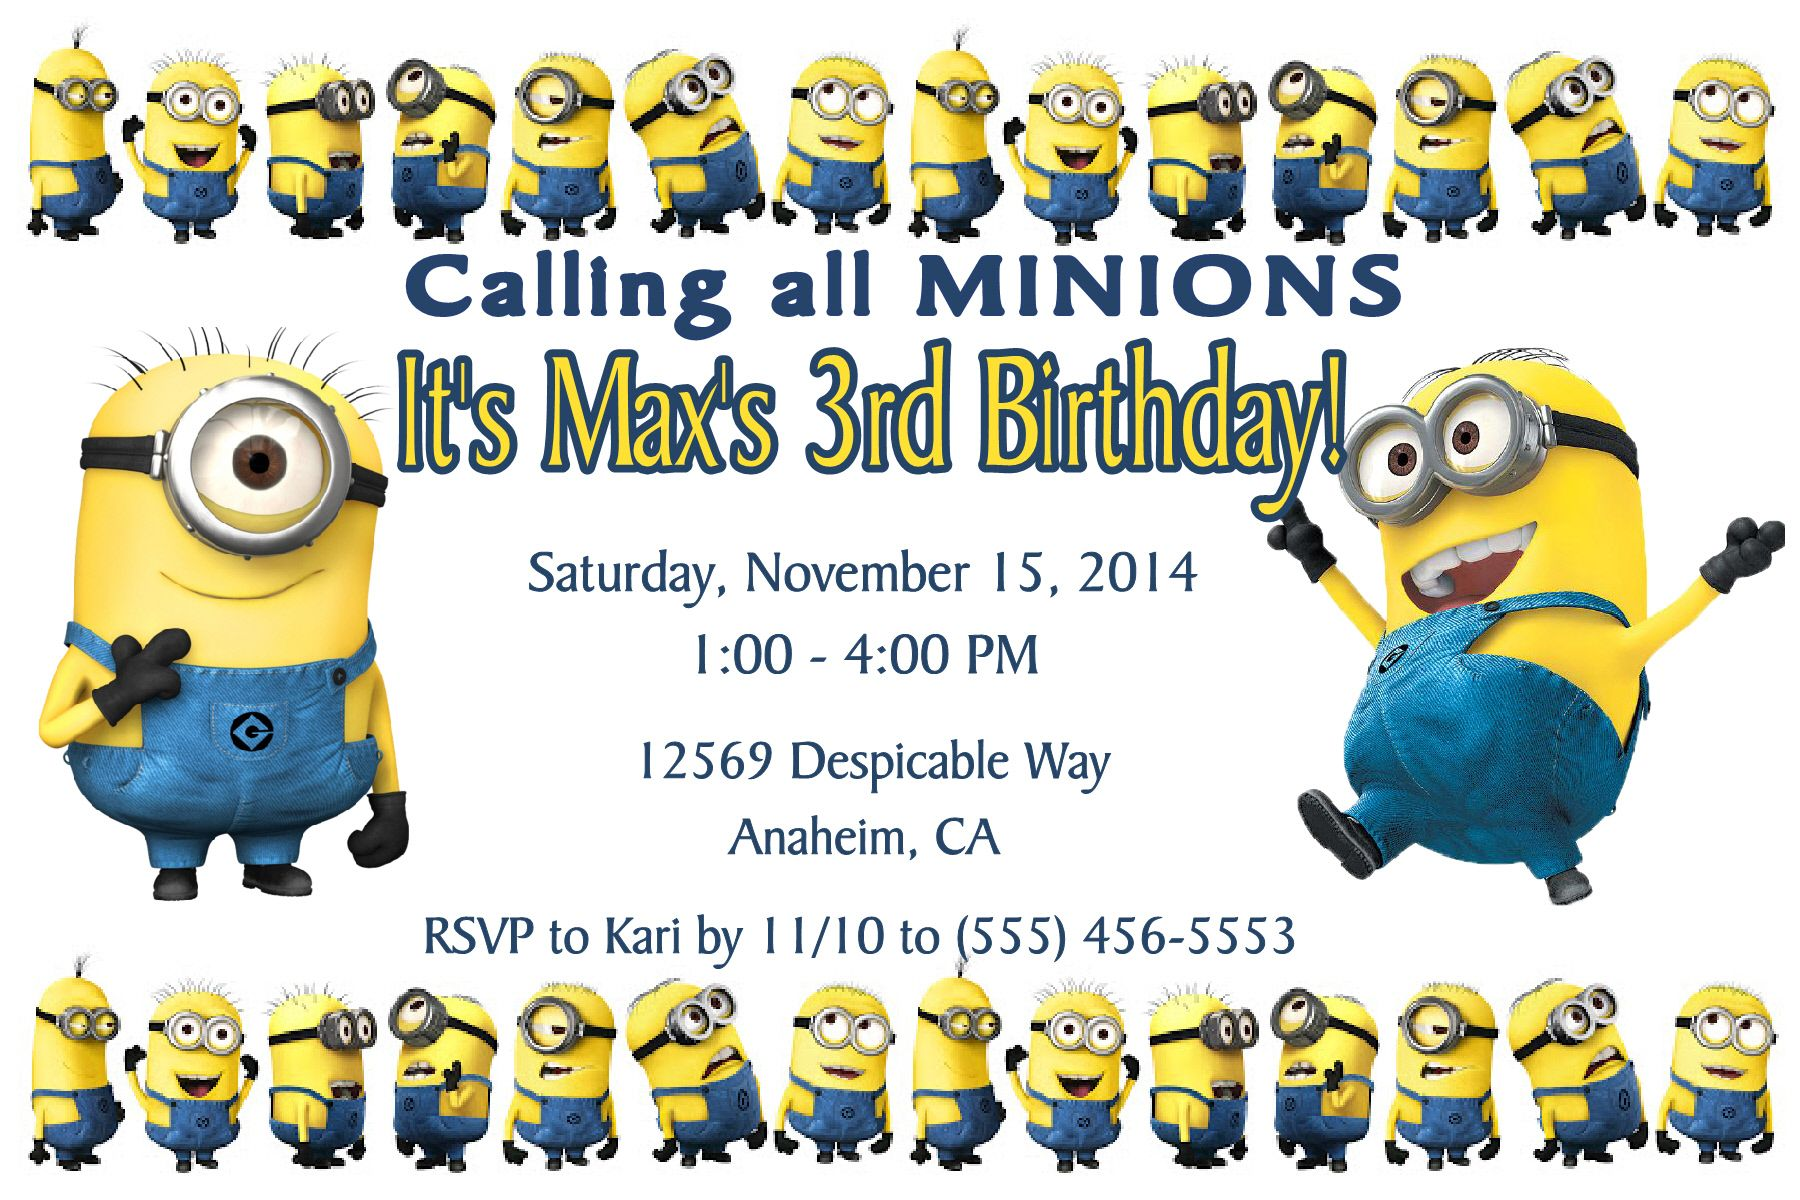 Minion Birthday Invitation. Click on the image twice to place orders or follow me on facebook. or email me at the address in BIO.